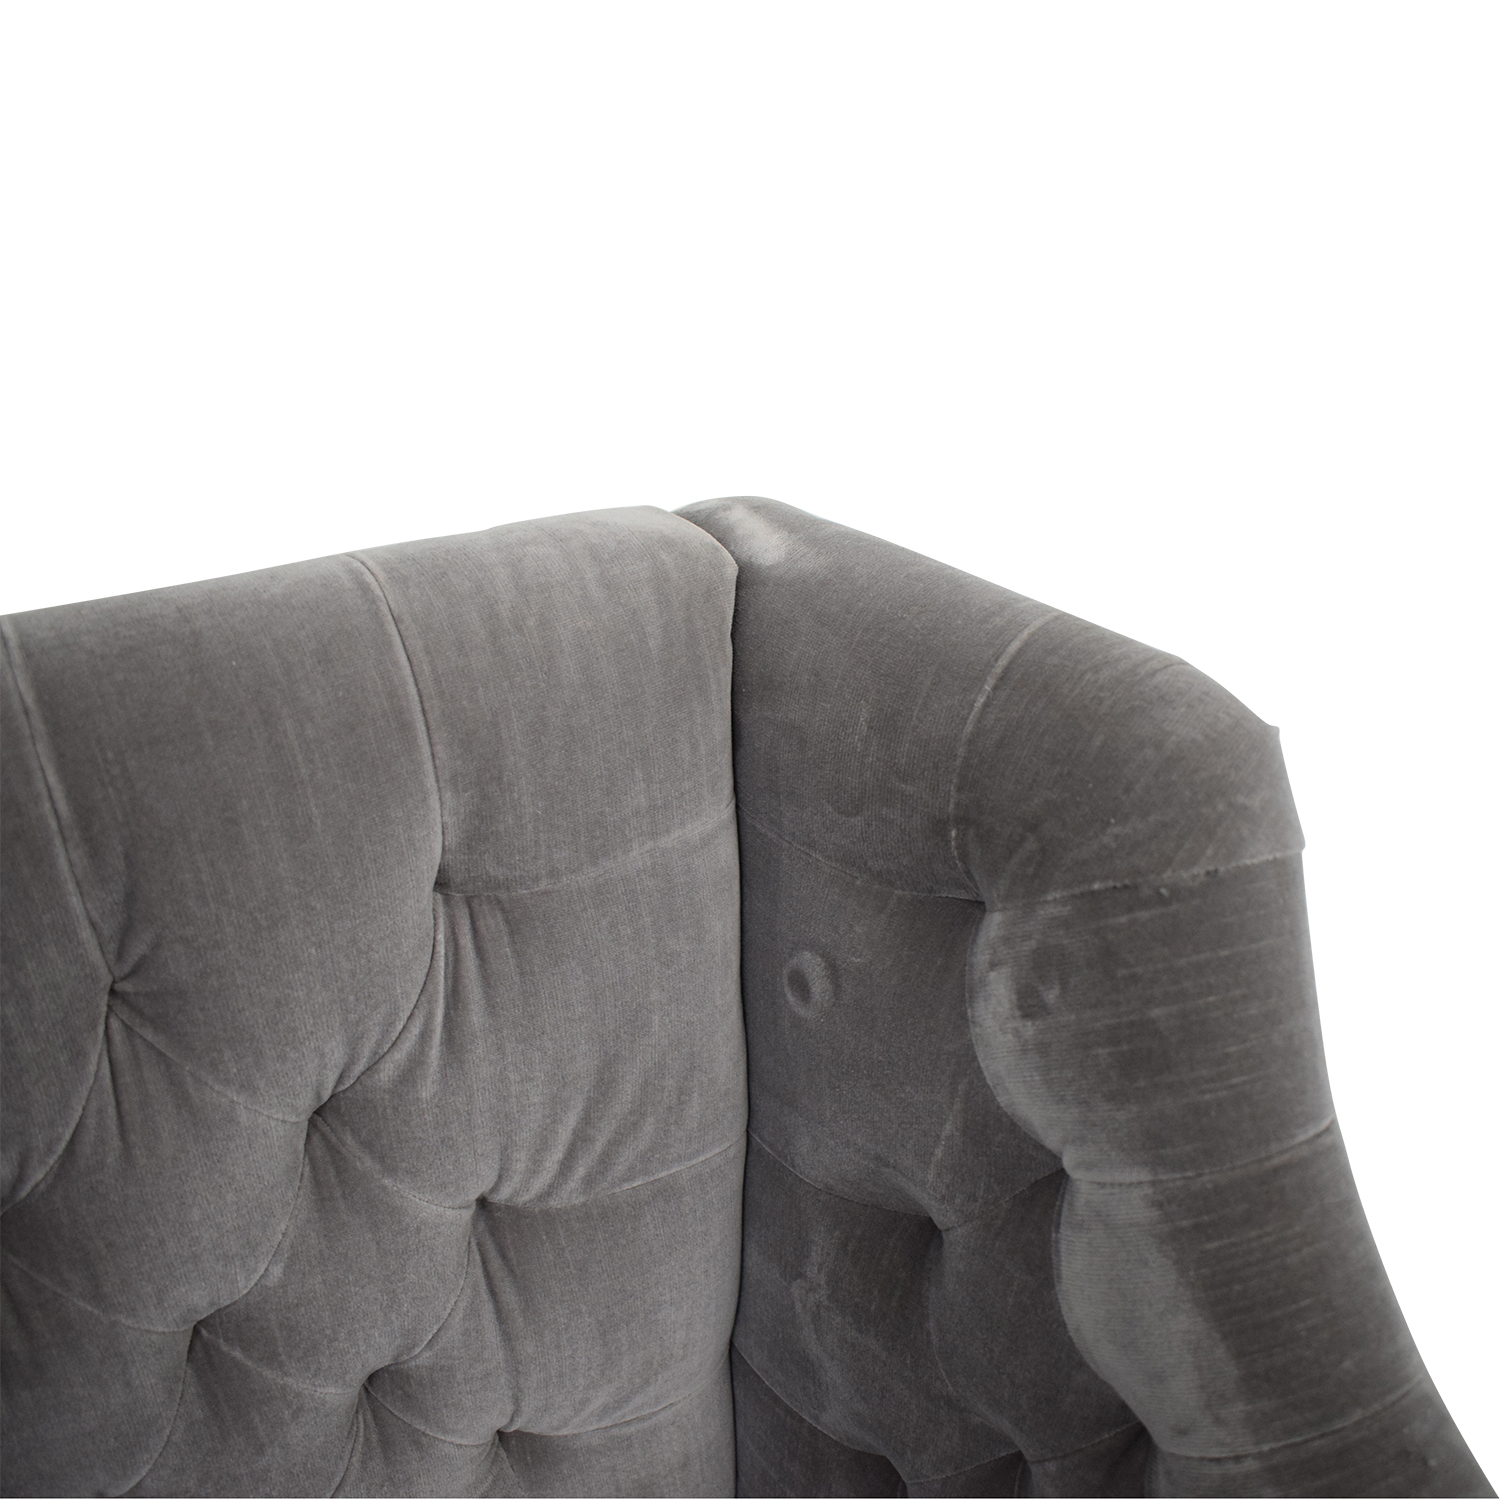 Restoration Hardware Restoration Hardware Devyn Tufted Queen Daybed